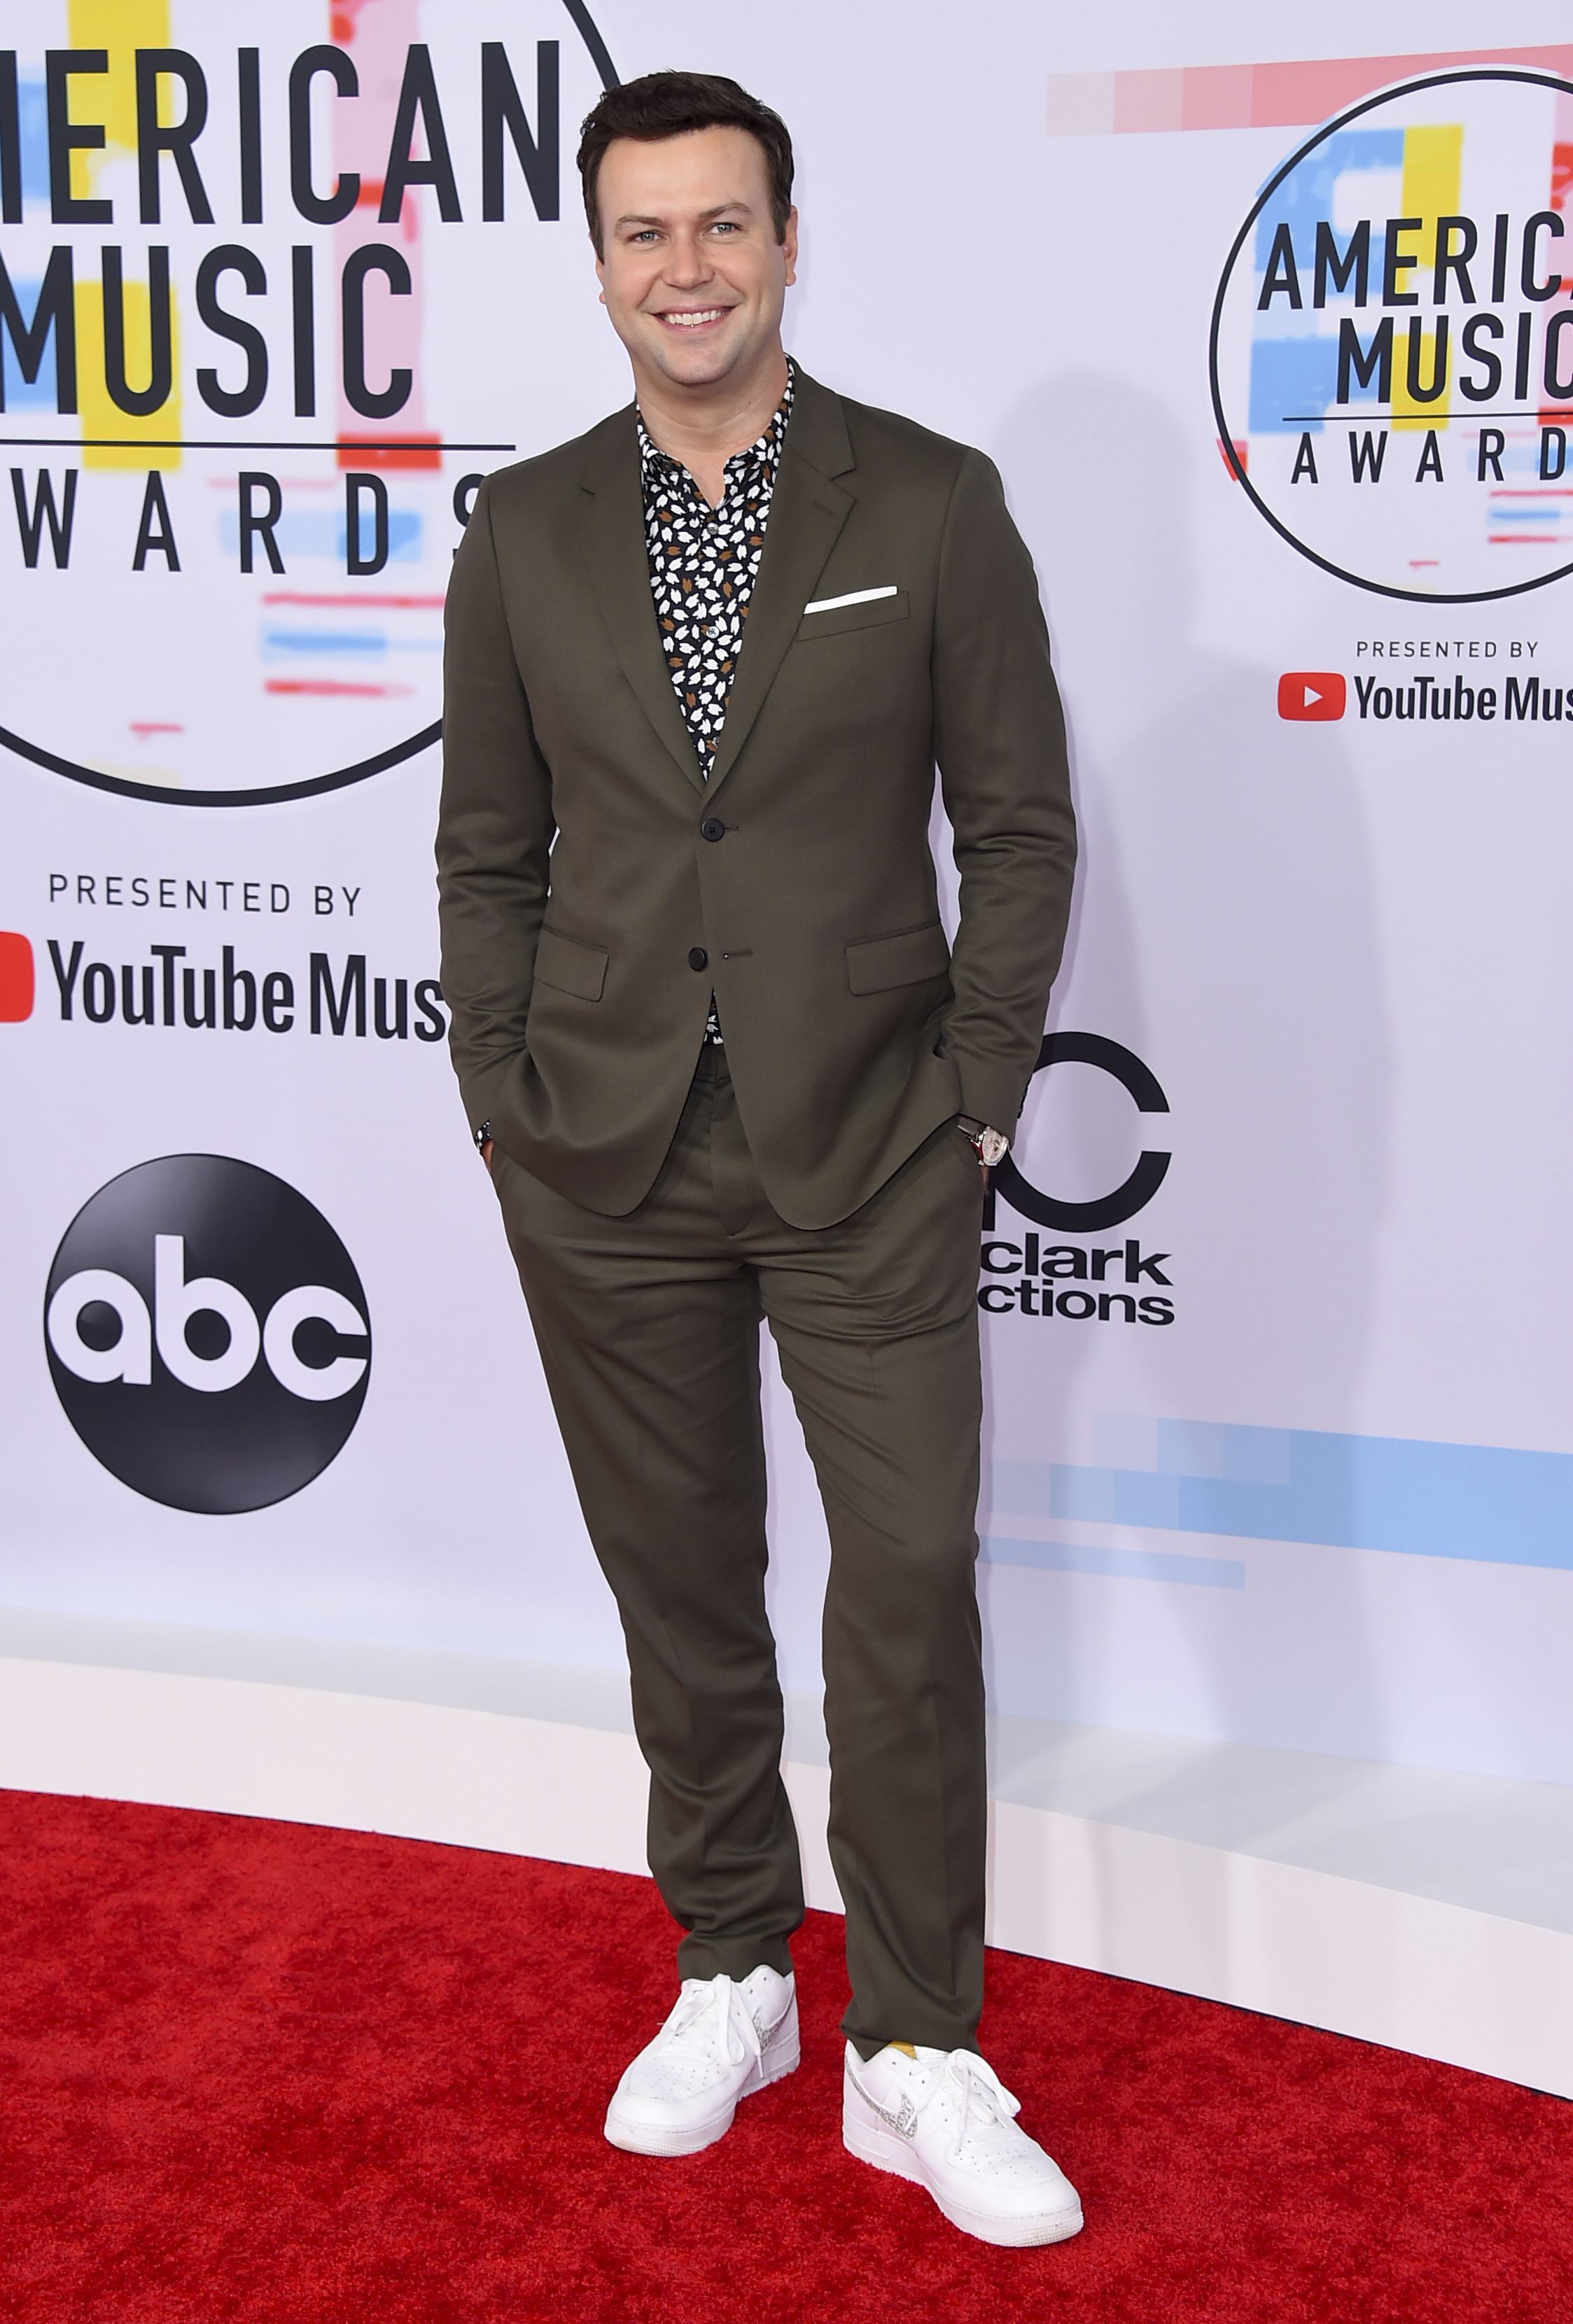 "<div class=""meta image-caption""><div class=""origin-logo origin-image none""><span>none</span></div><span class=""caption-text"">Taran Killam arrives at the American Music Awards on Tuesday, Oct. 9, 2018, at the Microsoft Theater in Los Angeles. (Jordan Strauss/Invision/AP)</span></div>"